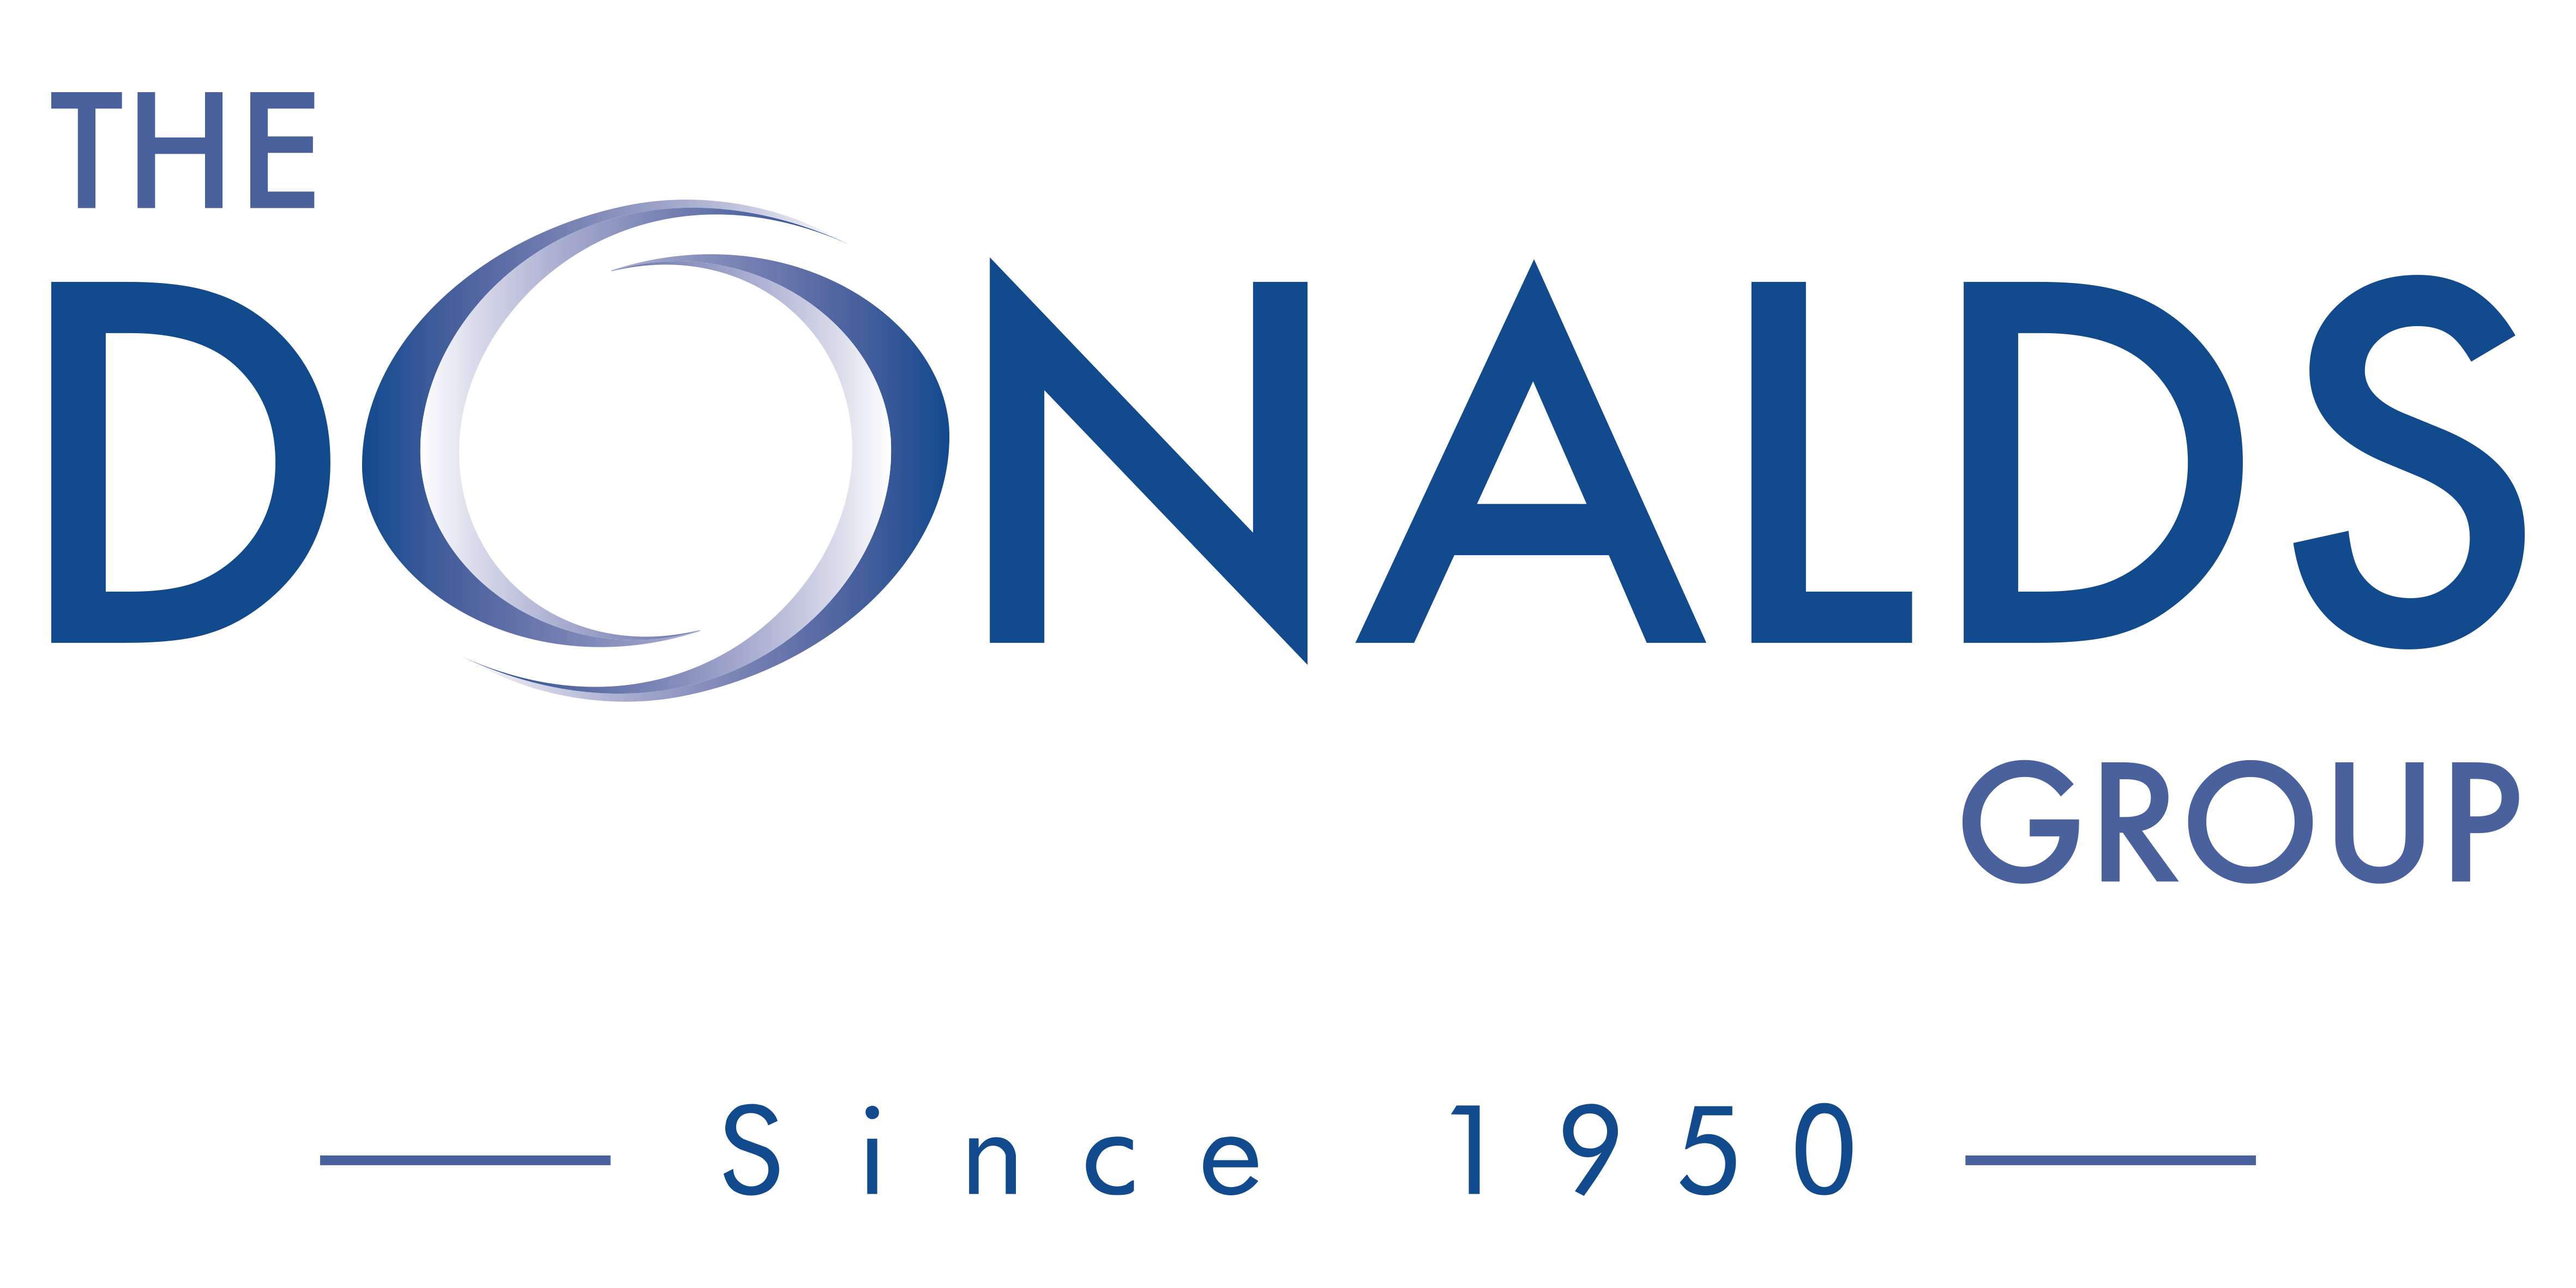 The Donalds Group logo